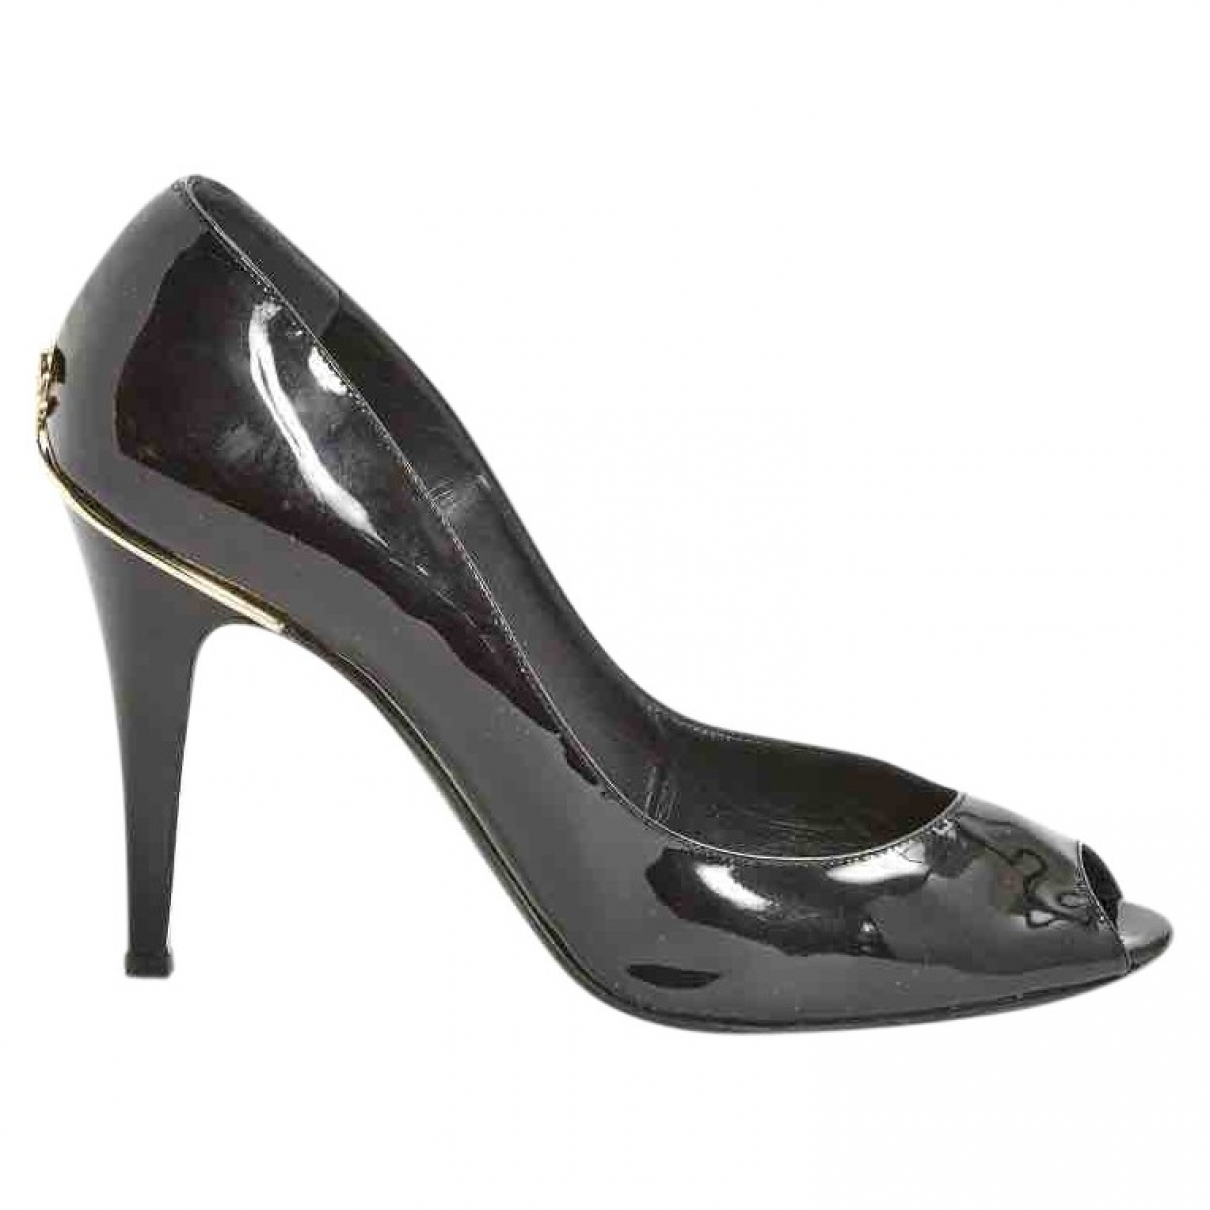 Chanel \N Black Patent leather Heels for Women 40 EU